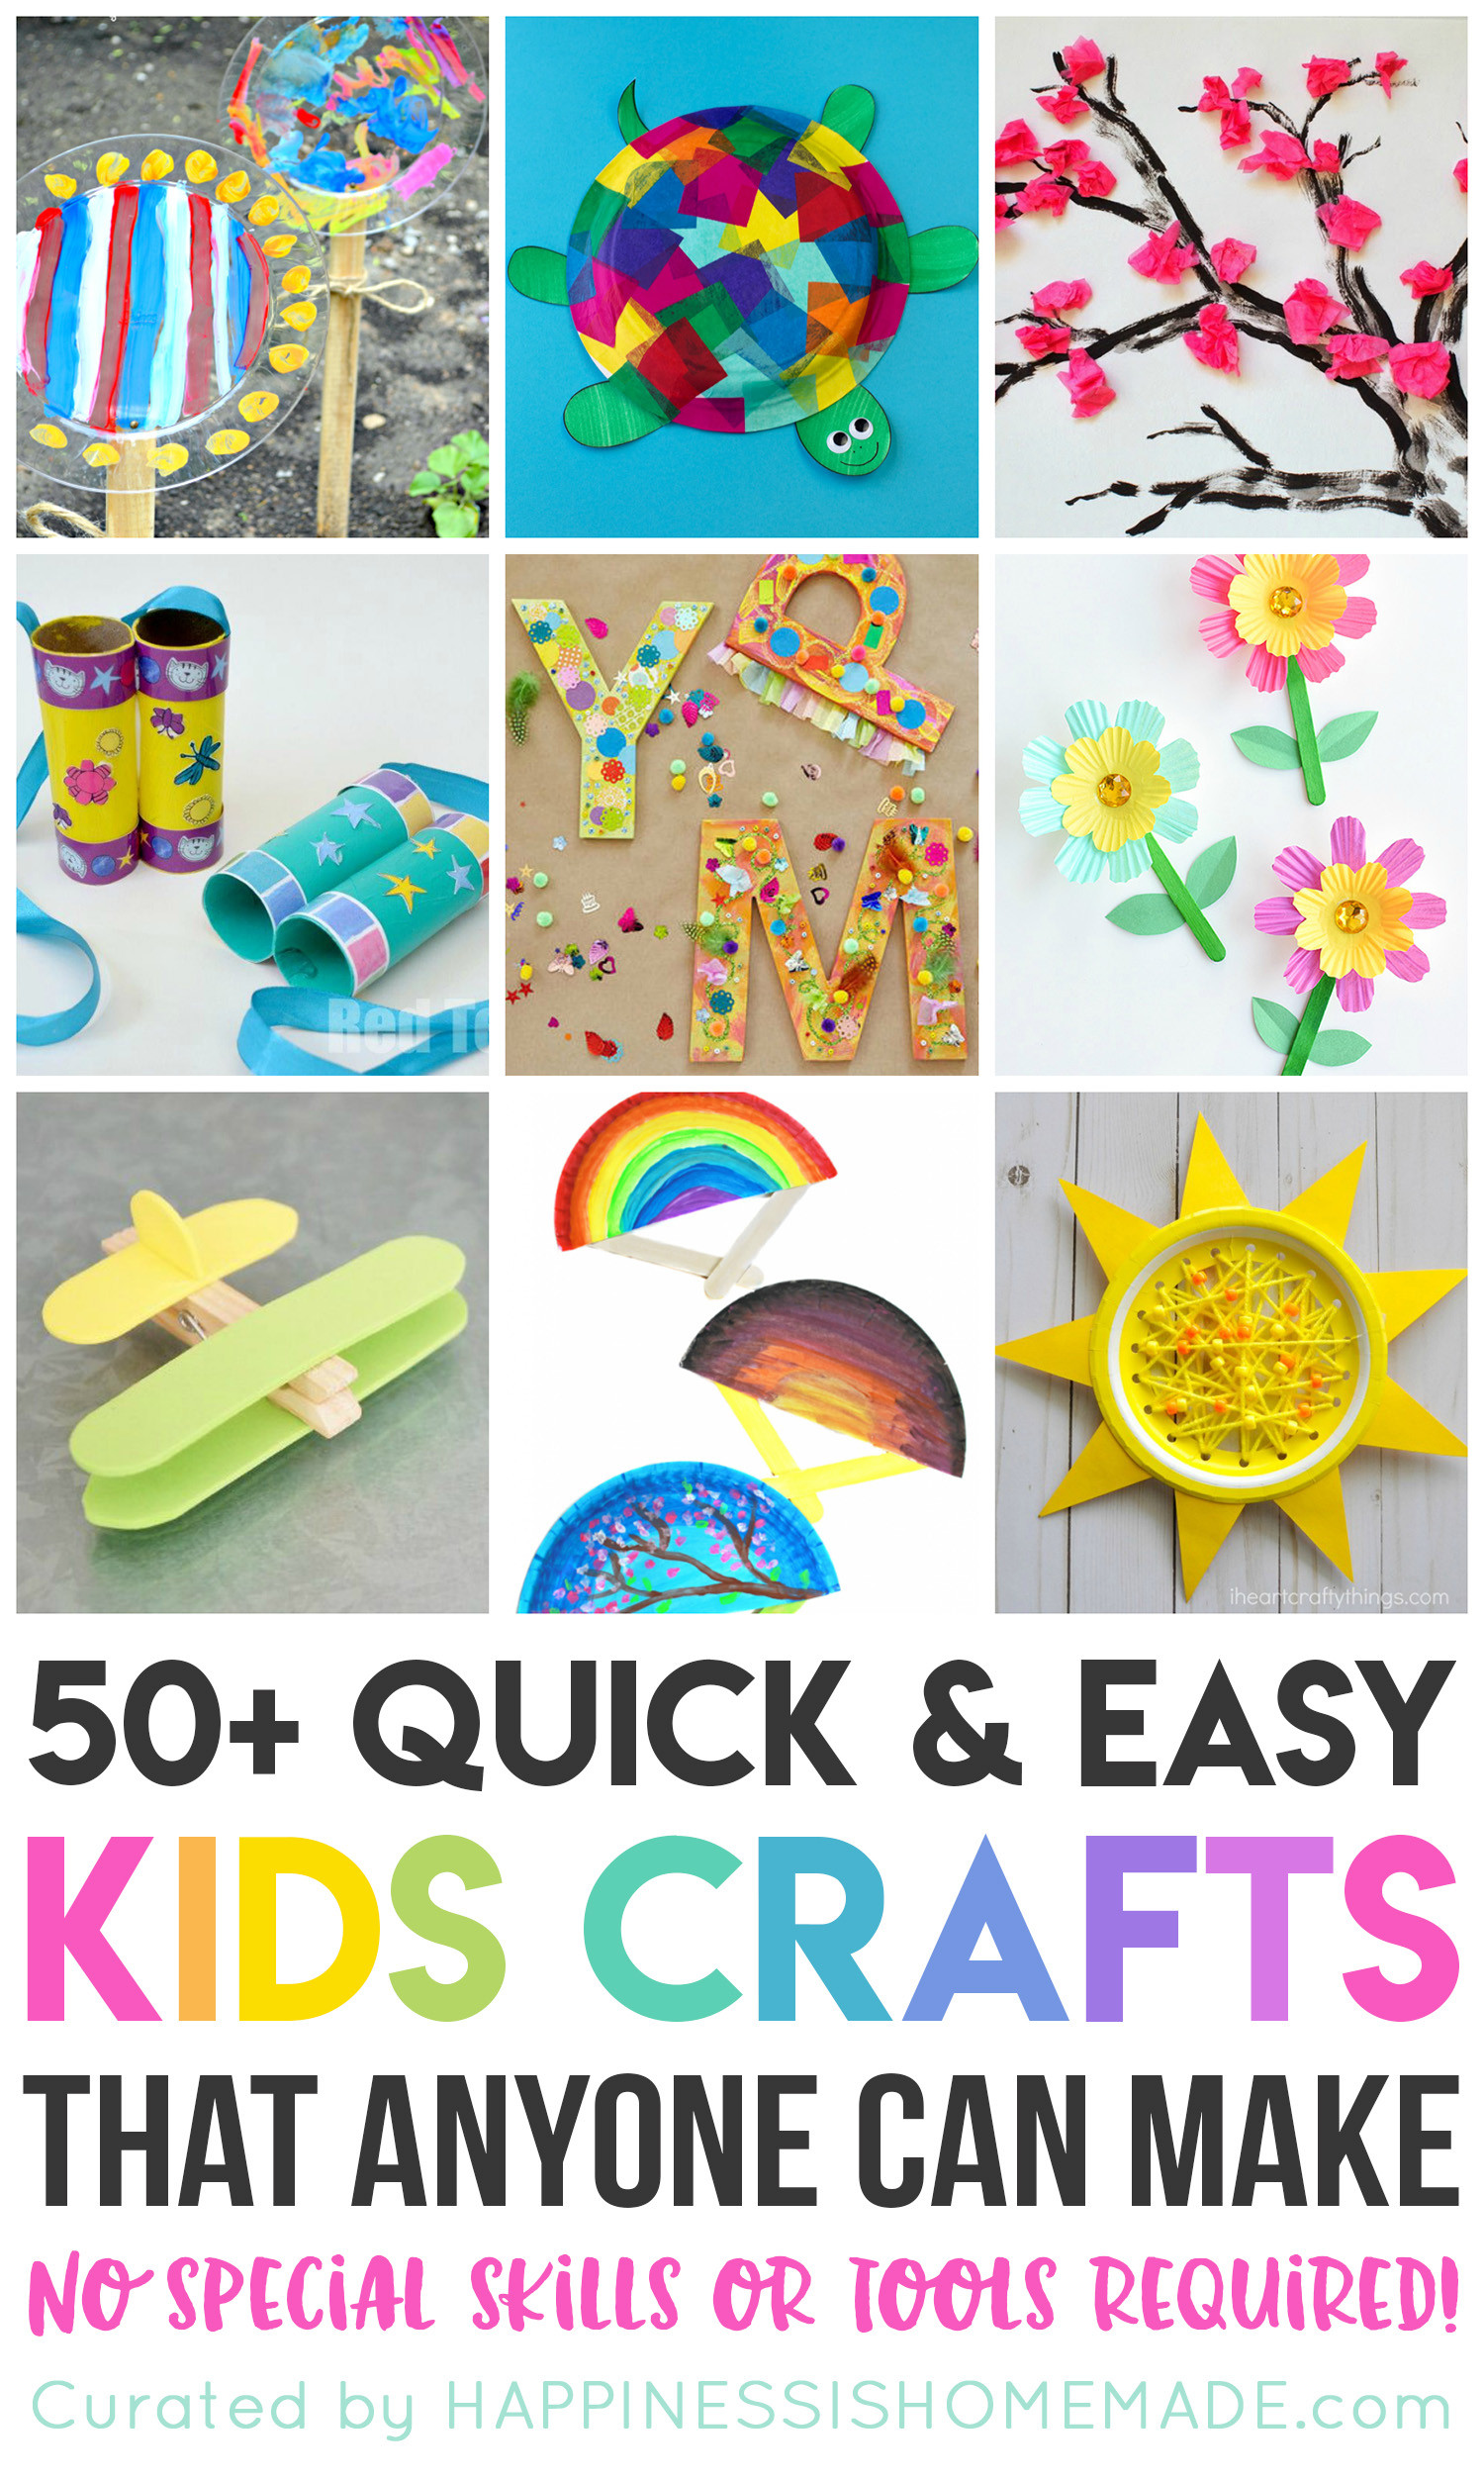 Easy Projects For Preschoolers  Quick & Easy Halloween Crafts for Kids Happiness is Homemade